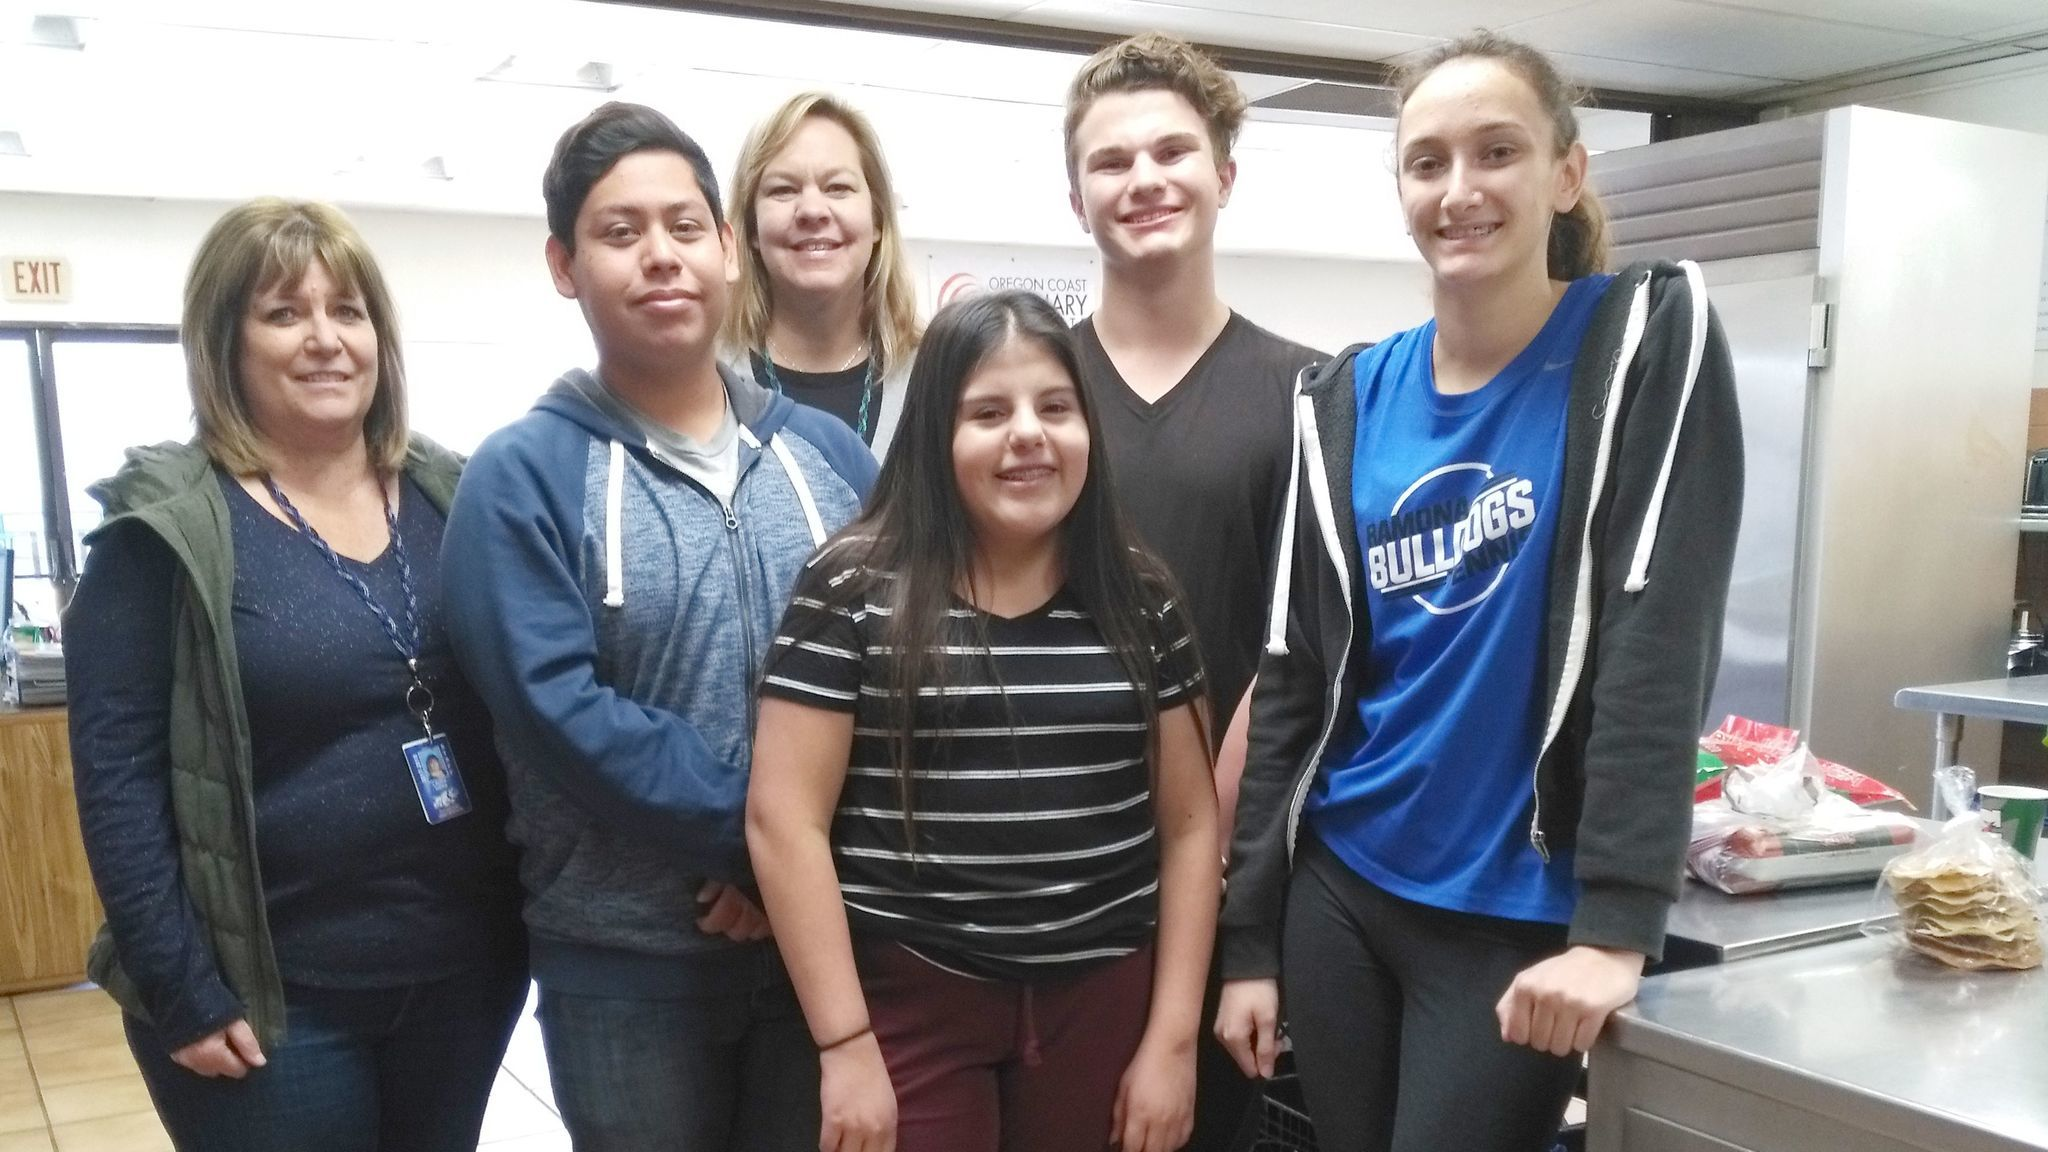 Students in Ramona High School's culinary classes who competed in SkillsUSA Region 6 competitions are Cesar Martinez, Azlynn Cordova, Connor Hane and Jessica Nelson.